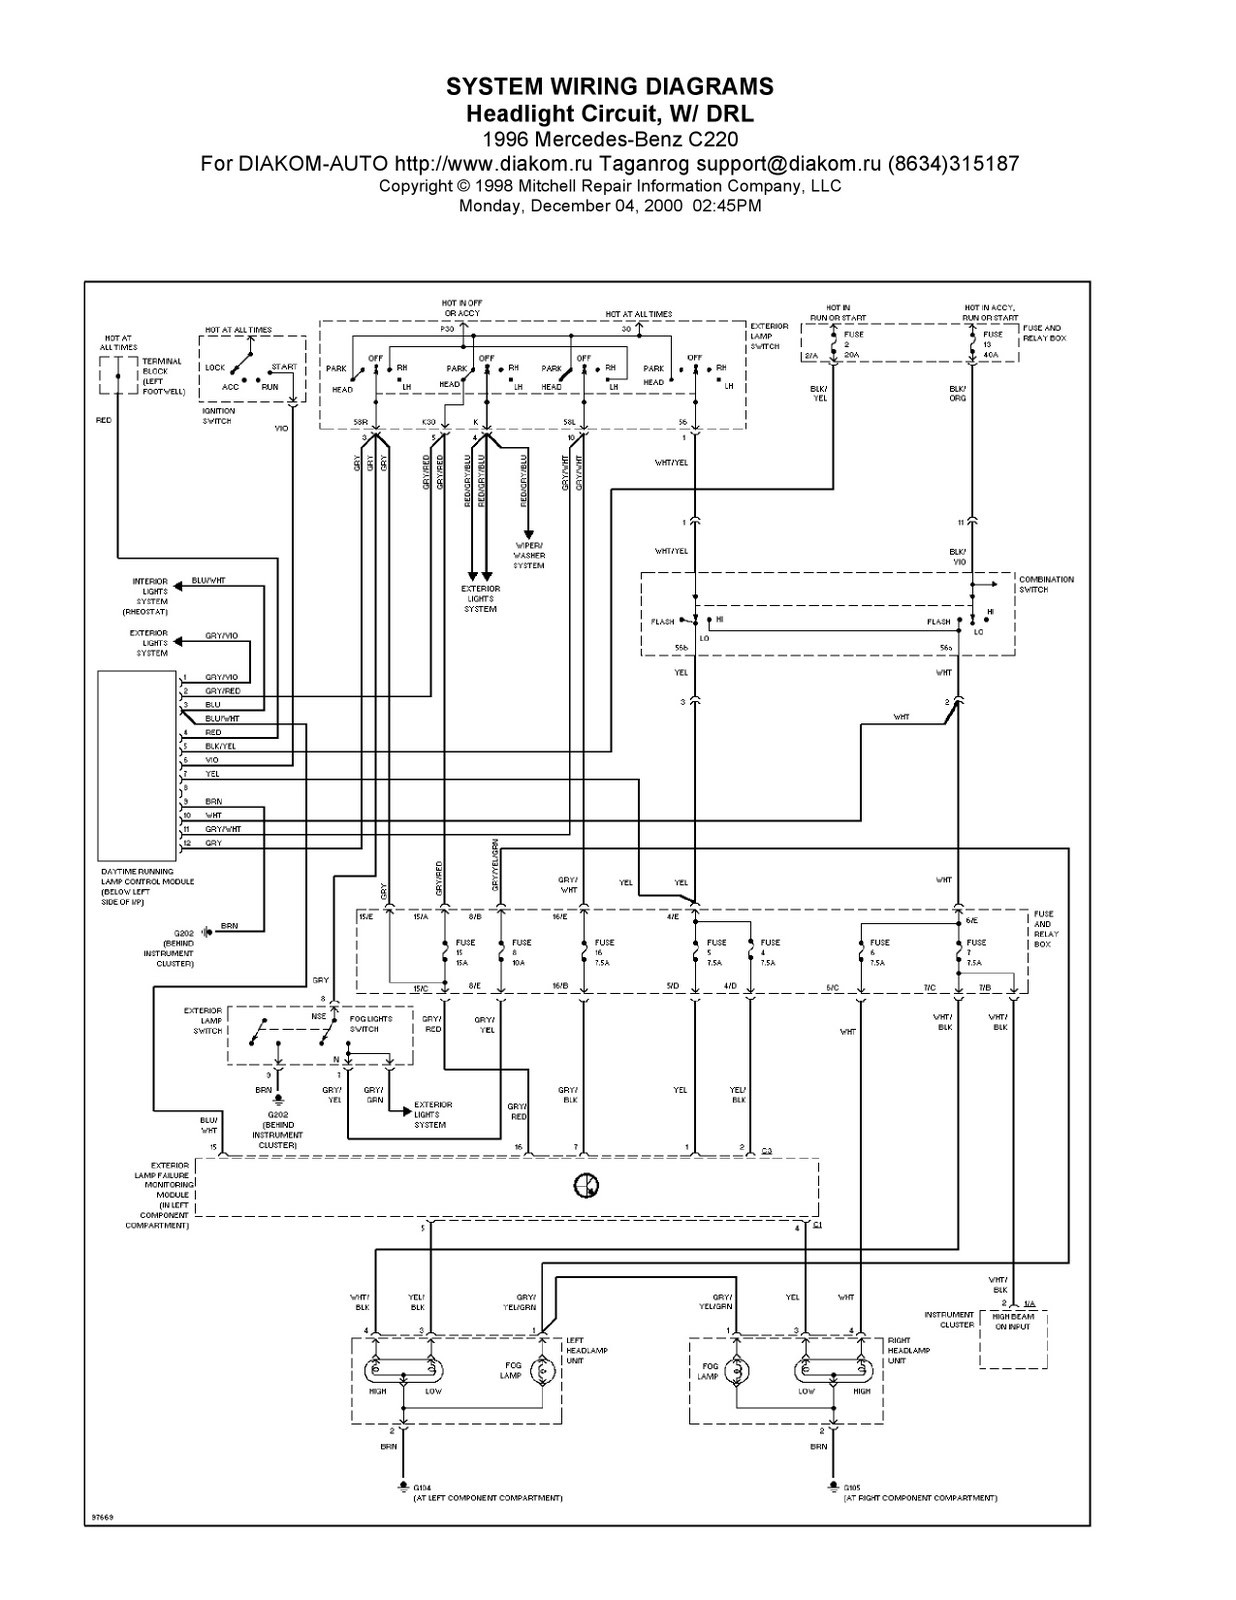 Mercedes Benz Ac Wiring Diagram Auto Electrical Slk280 Fuel Filter Astonishing Color Codes Gallery